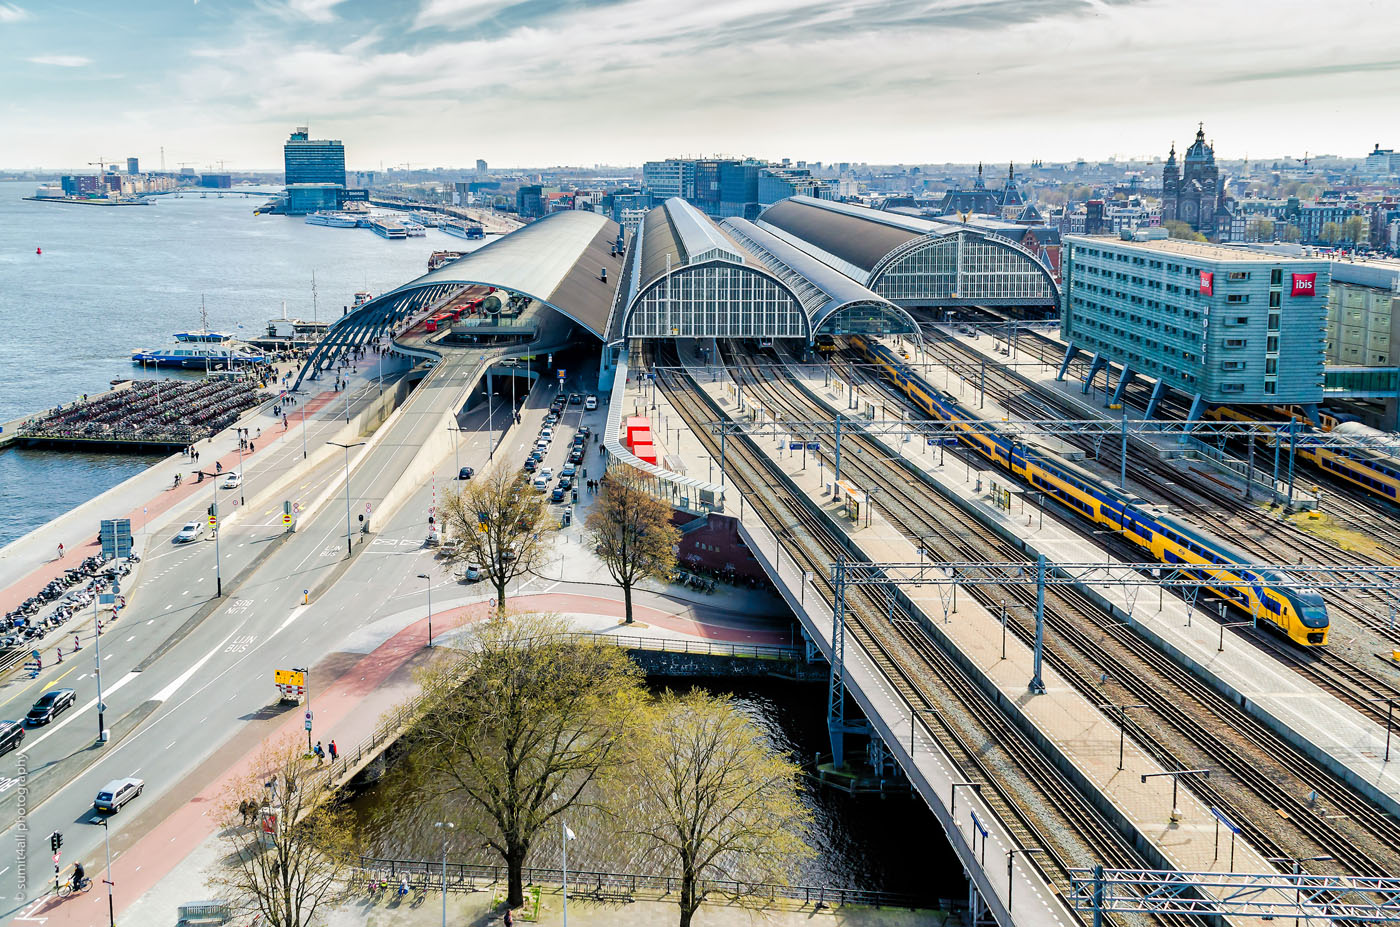 Overlooking the Amsterdam Centraal Station